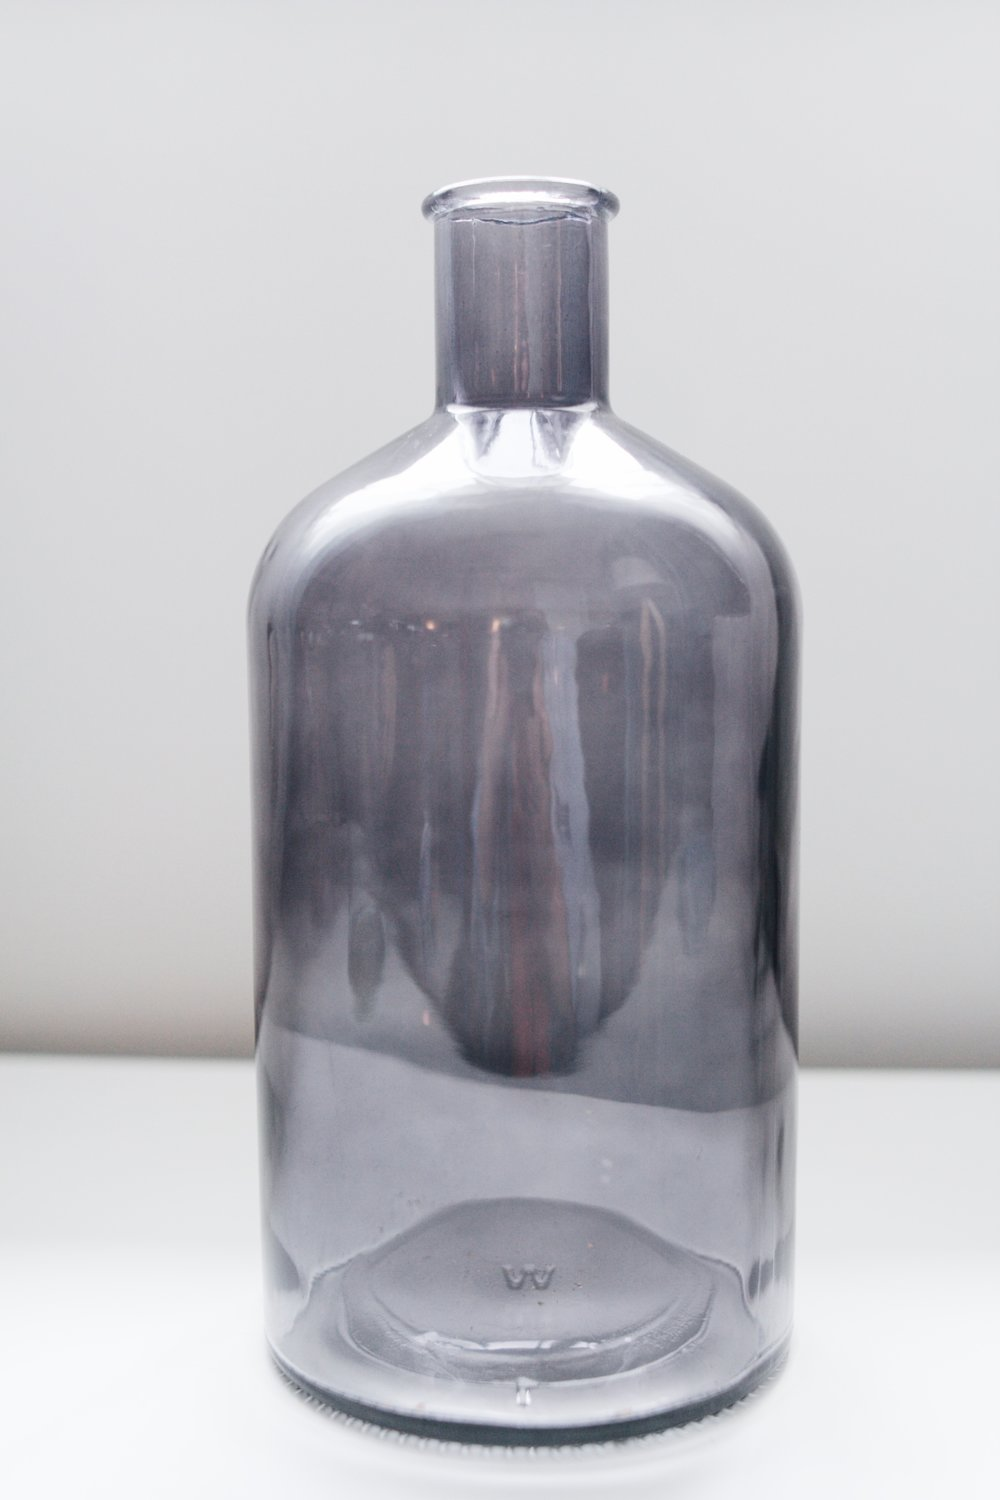 avideas-inventory-vessels-blacksmokeglassbottle-LRG.jpeg